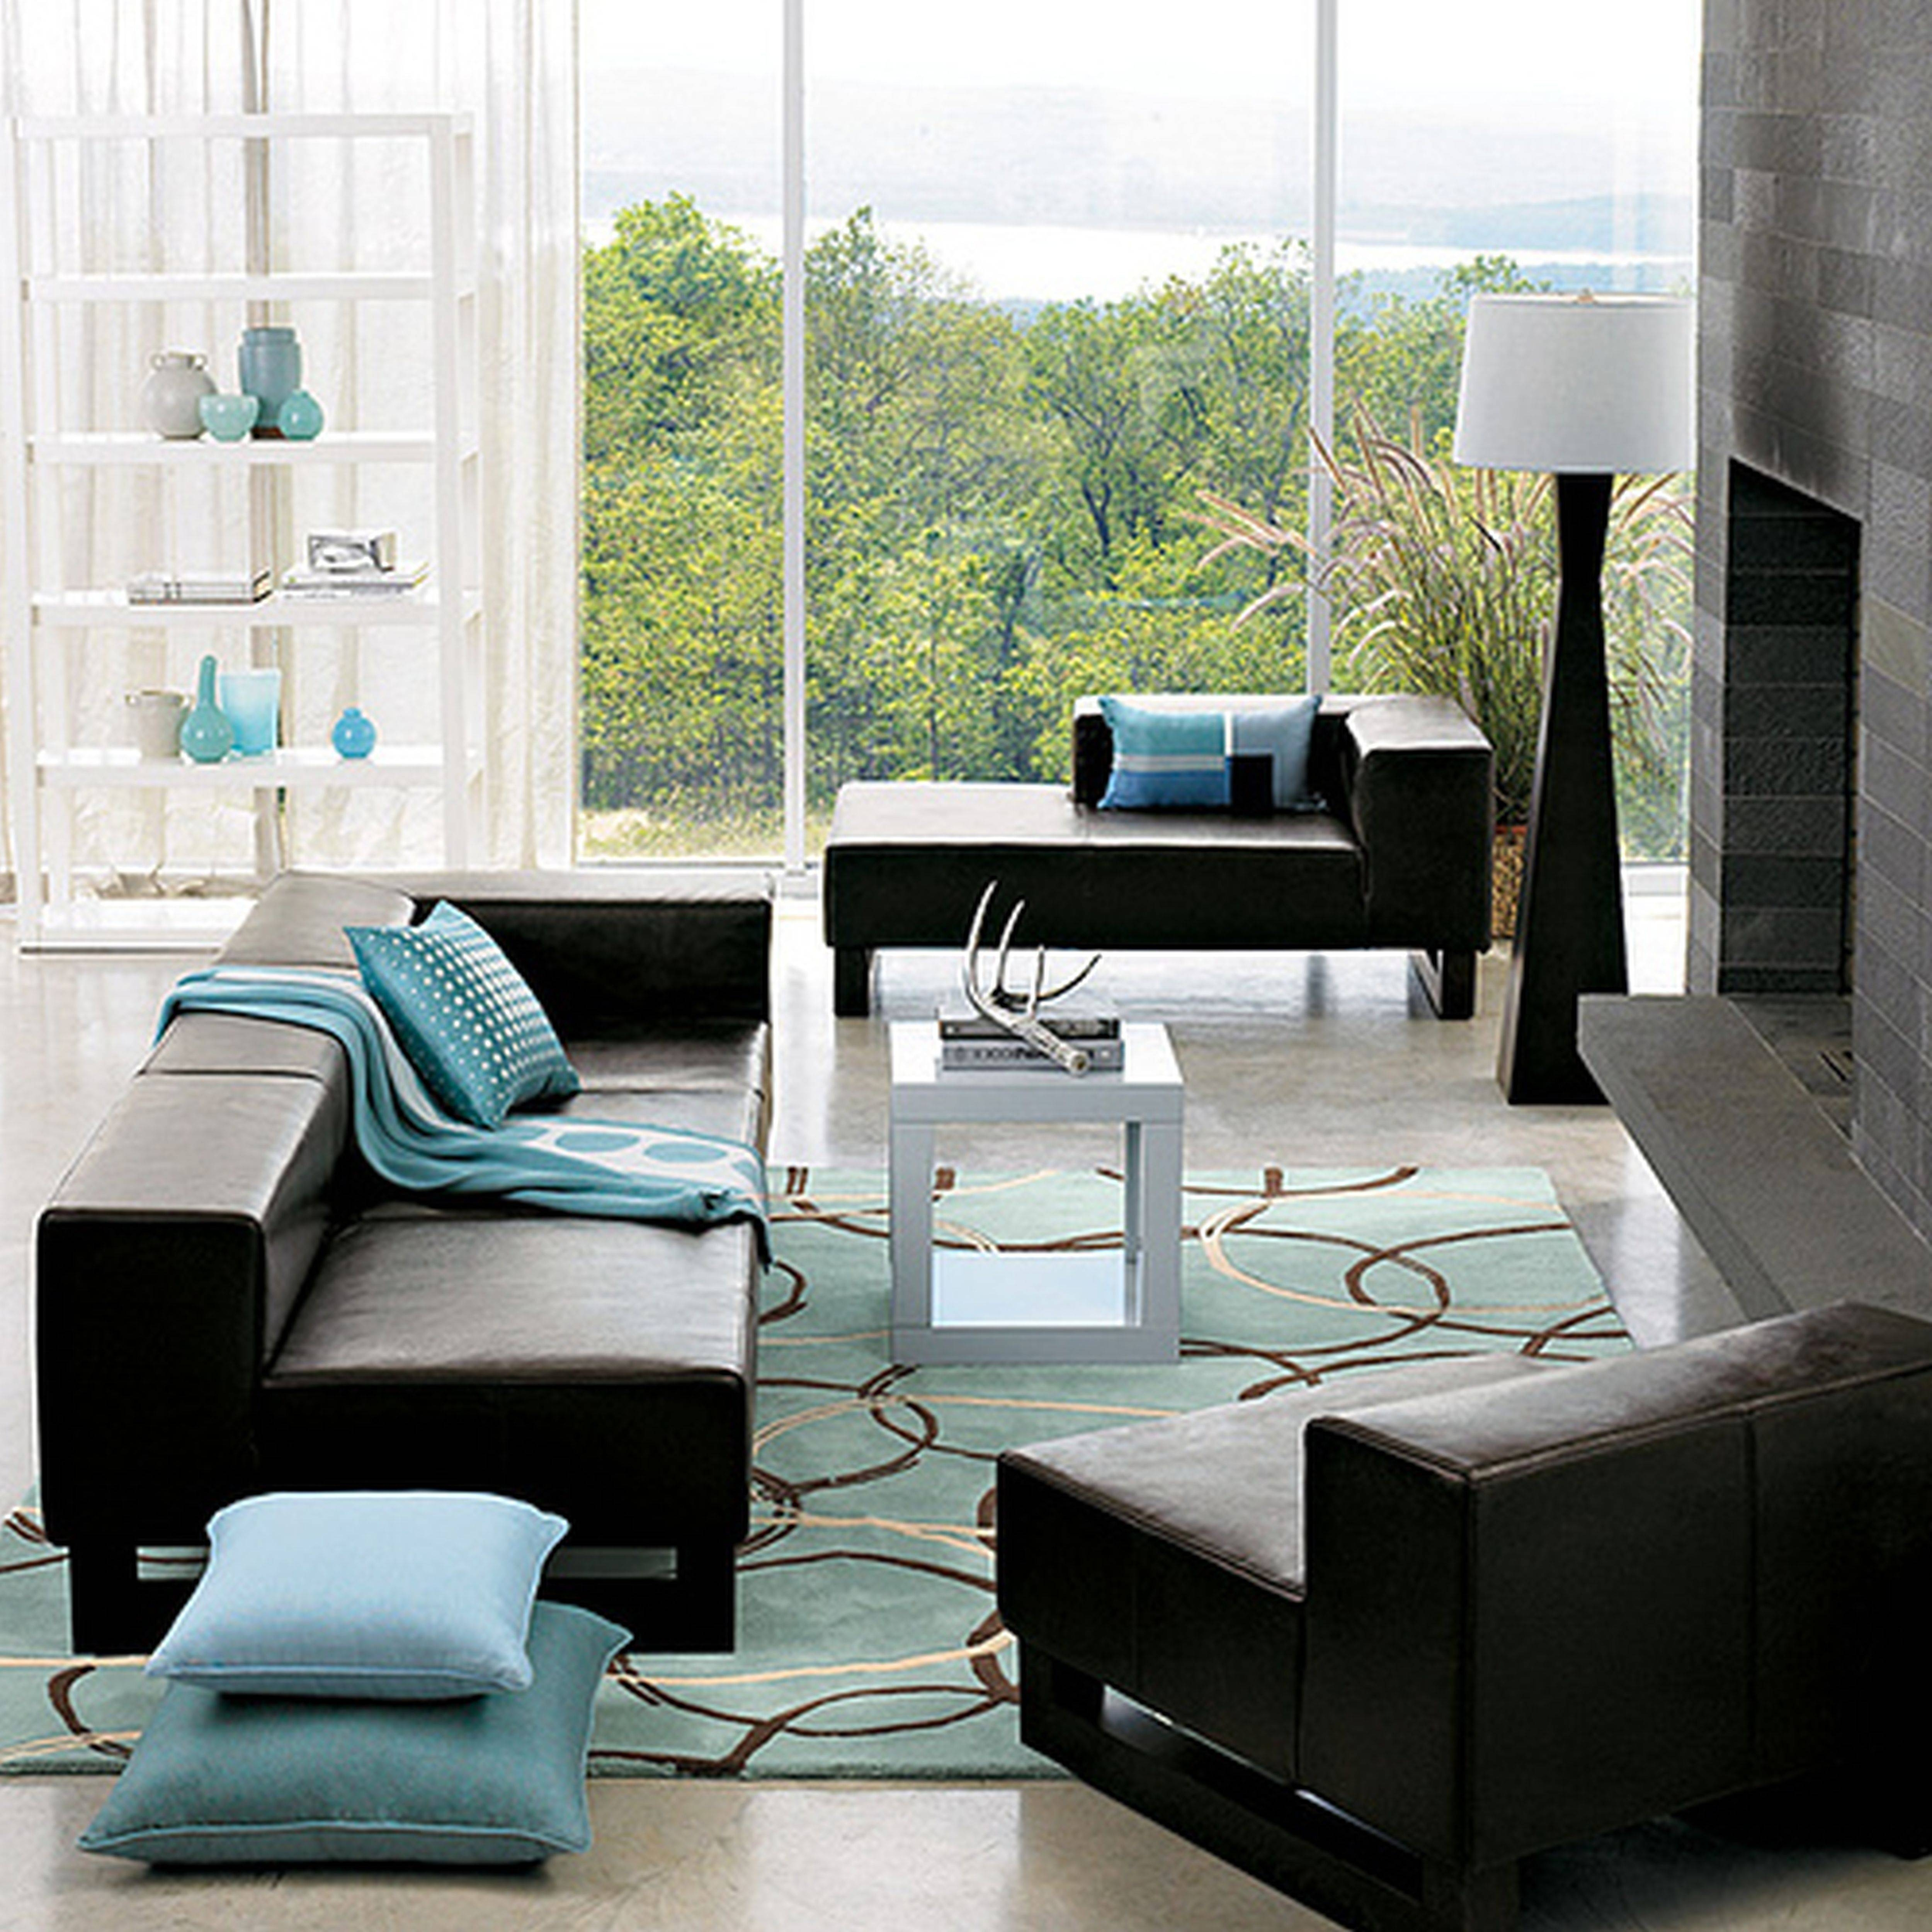 Black Leather Couch With Blue Blanket And Cushions Combined with regard to Black Sofas Decors (Image 6 of 15)